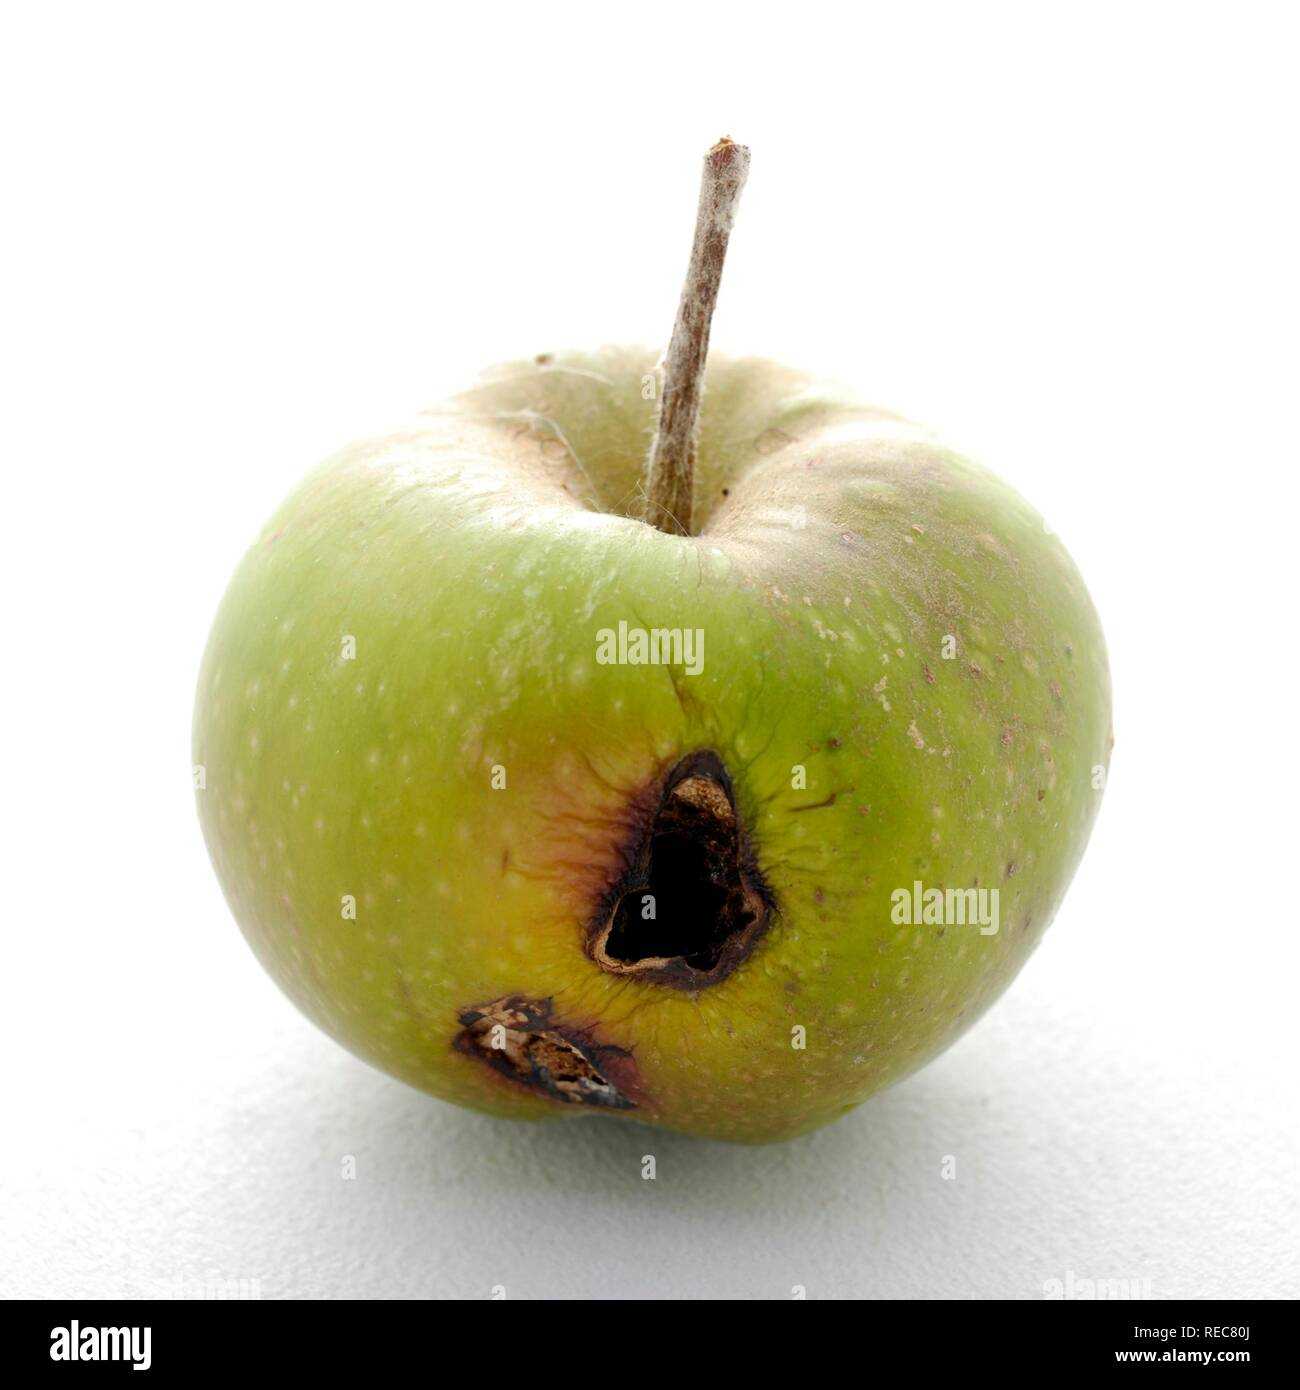 Codling moth pest affected apple - Stock Image